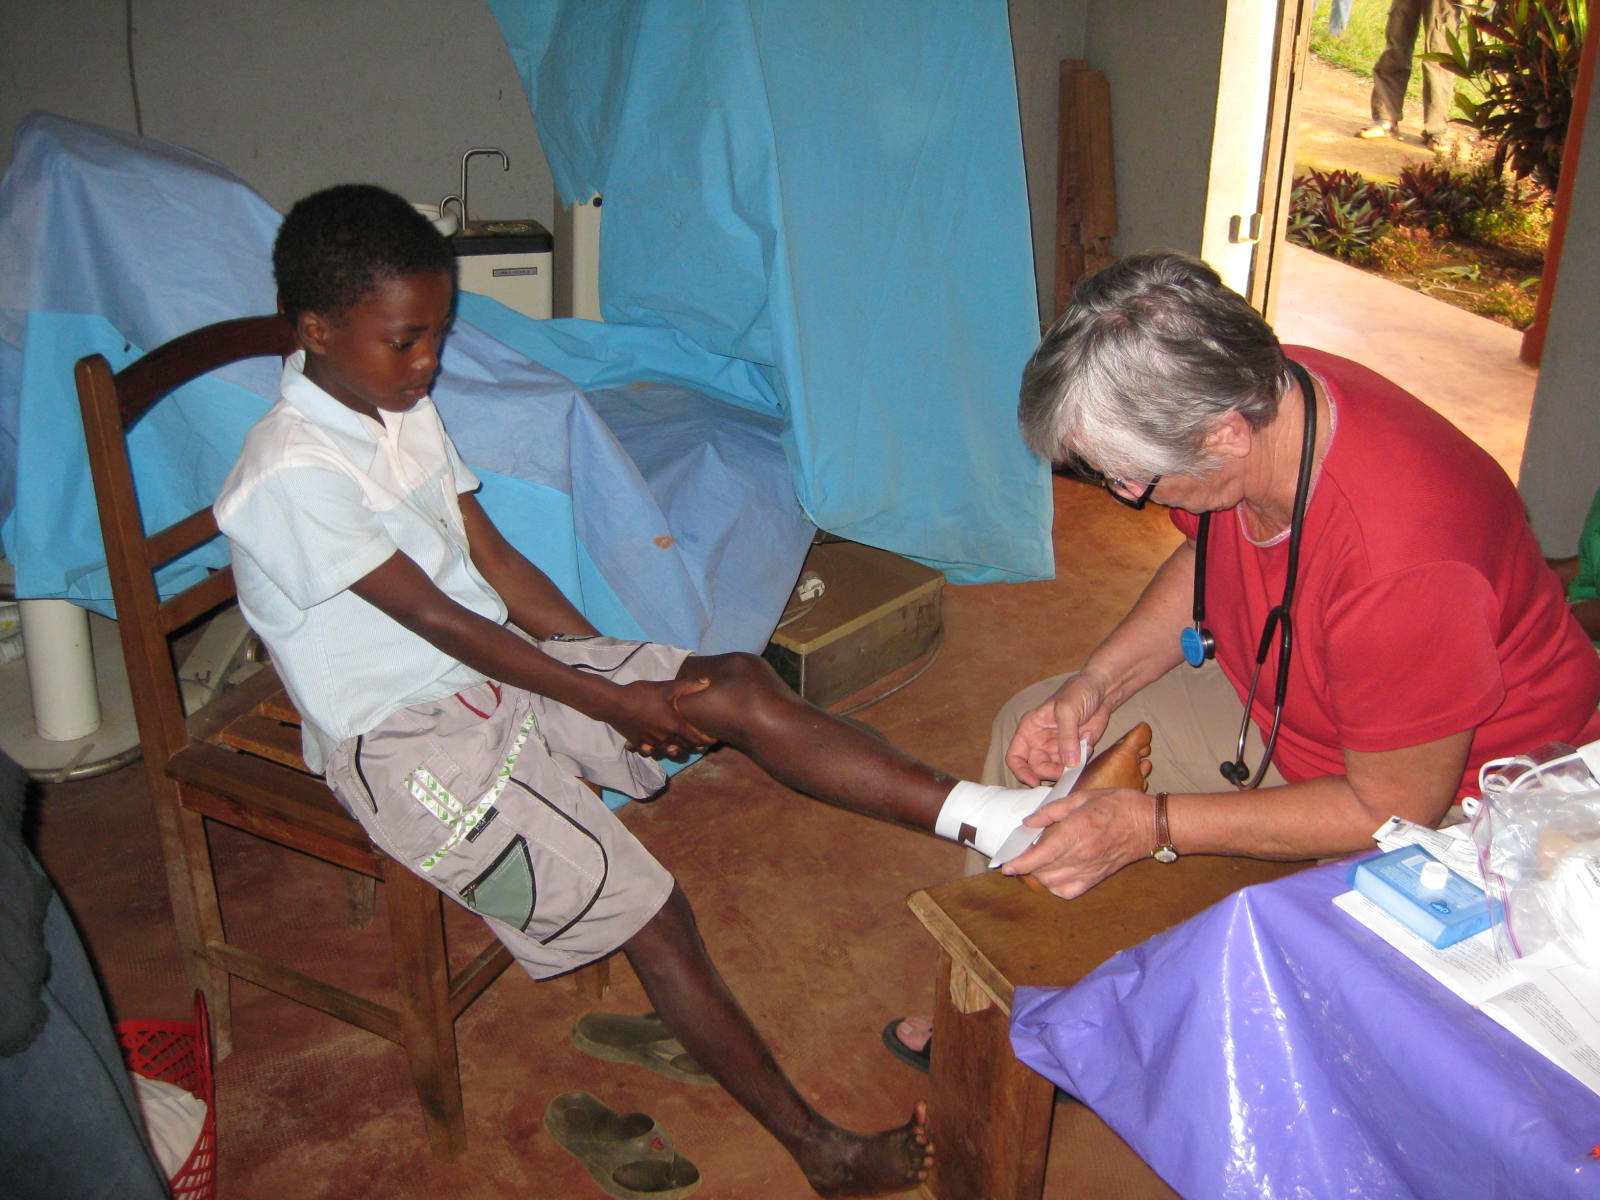 Cass treating a young boy's infected foot. Note how well-dressed andscrubbed the child is. Though poor, families have much pride in presentingthemselves and children to the western medical team.